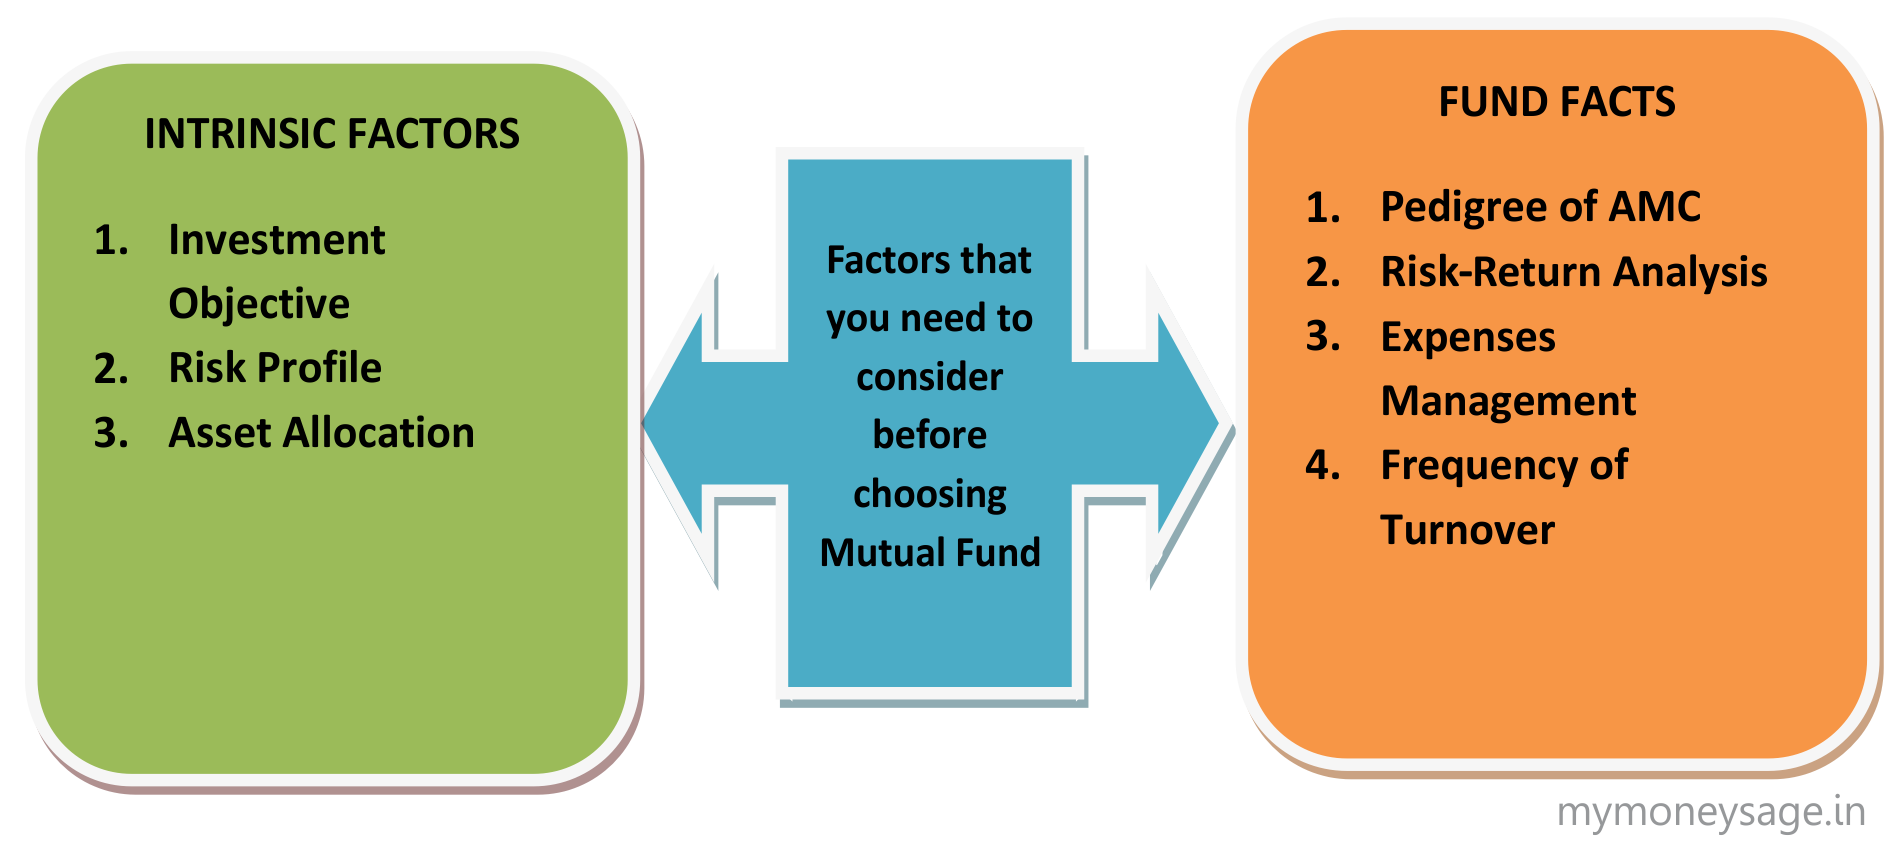 Factors that you need to consider before choosing Mutual Fund